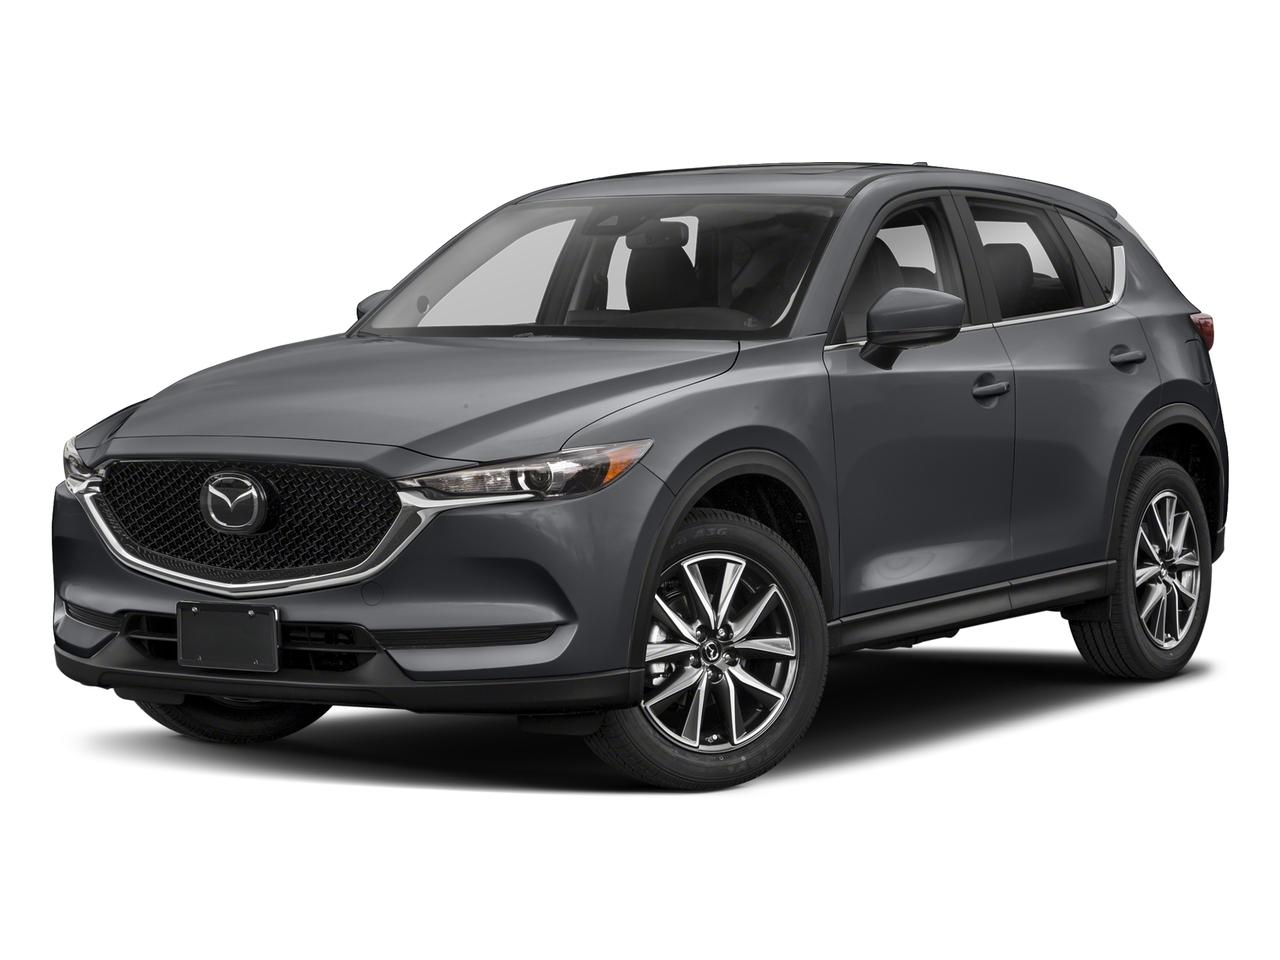 2018 Mazda CX-5 Vehicle Photo in Appleton, WI 54913